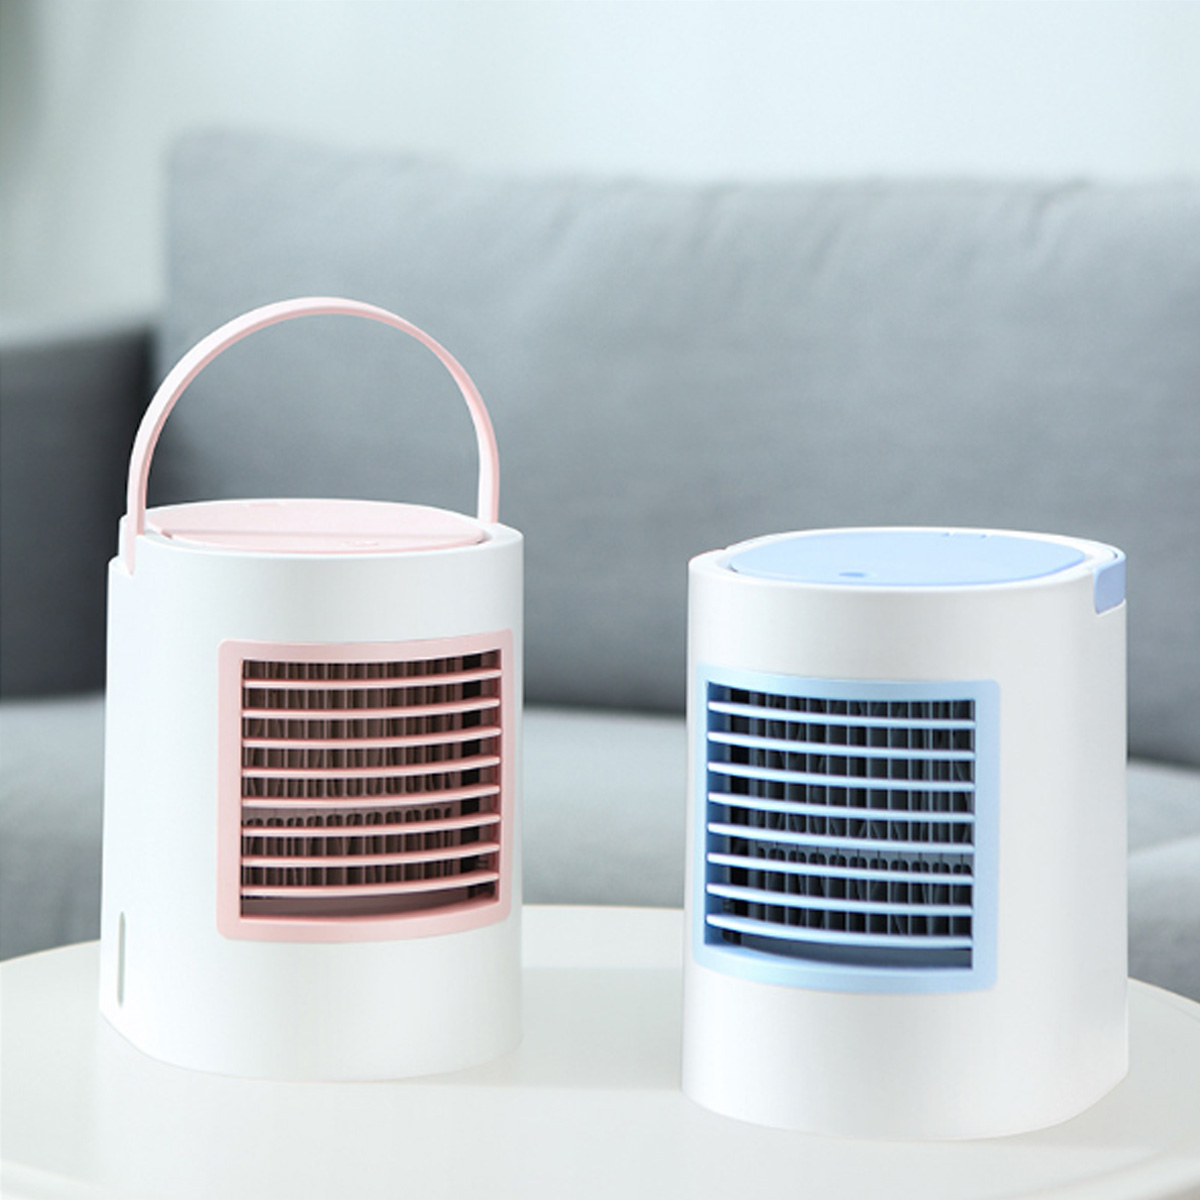 USB Mini Portable Air Conditioner Air Cooler Humidifier Purifier with LED Light Personal Space Fan Air Cooling FanUSB Mini Portable Air Conditioner Air Cooler Humidifier Purifier with LED Light Personal Space Fan Air Cooling Fan